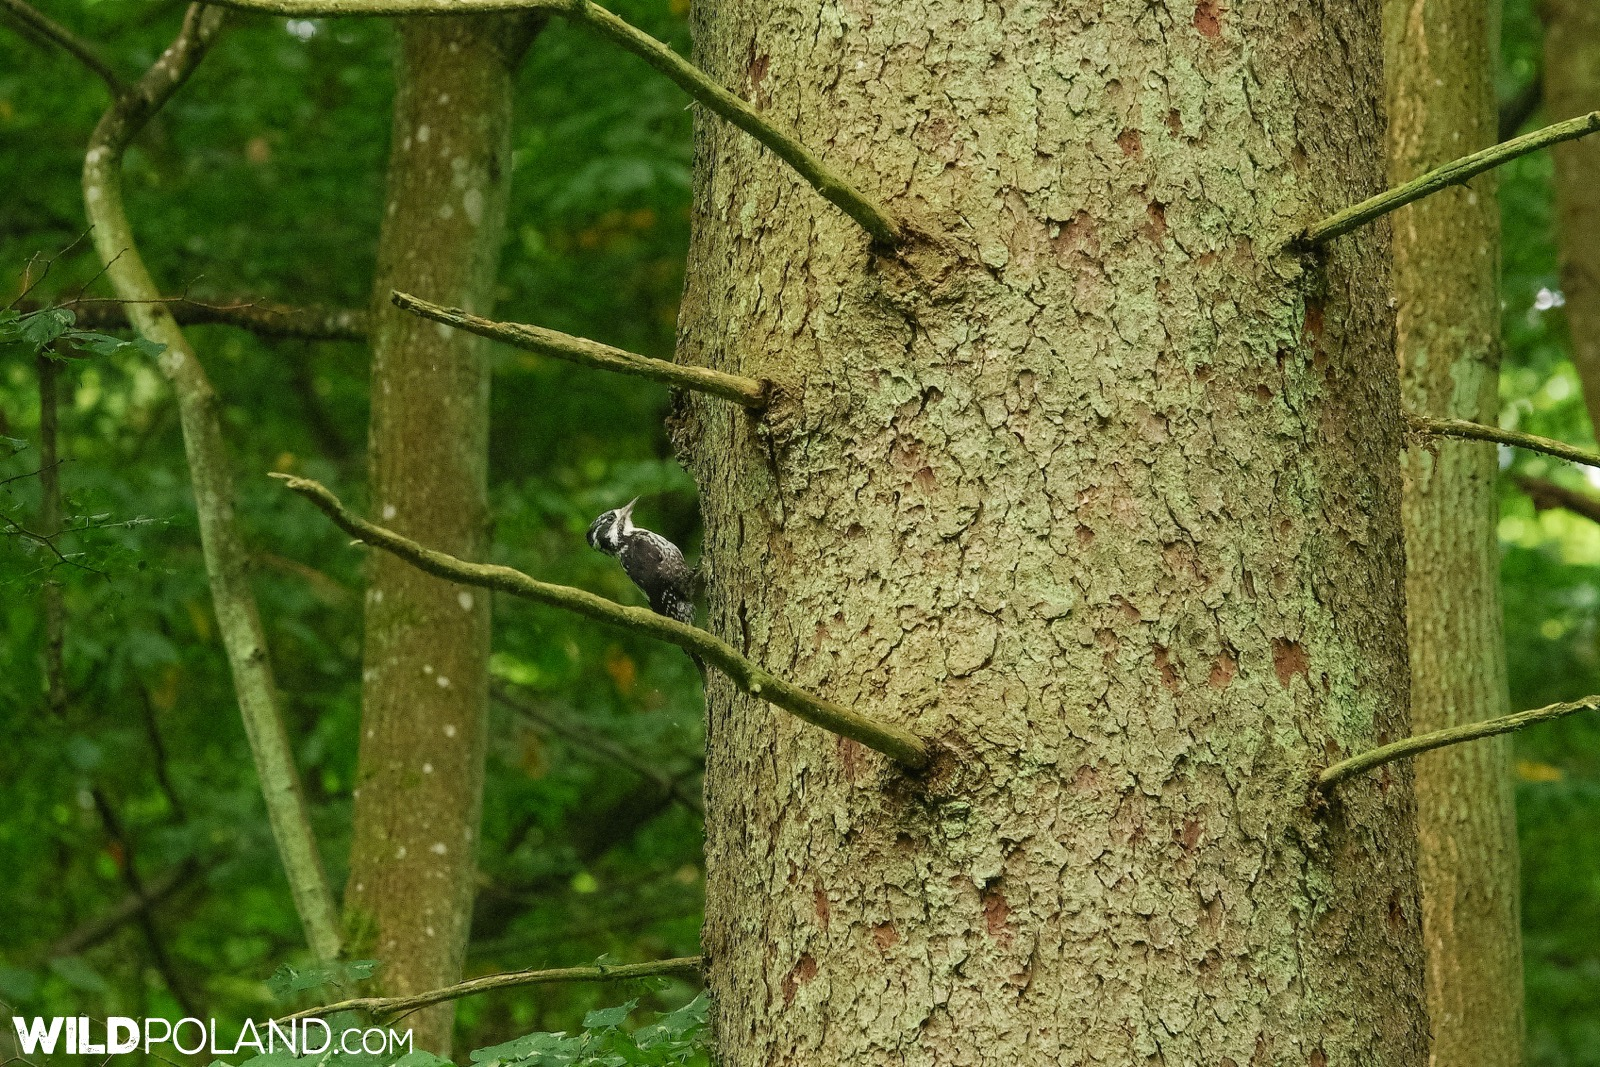 Three-toed woodpecker in the Białowieża Forest, photo by Andrzej Petryna